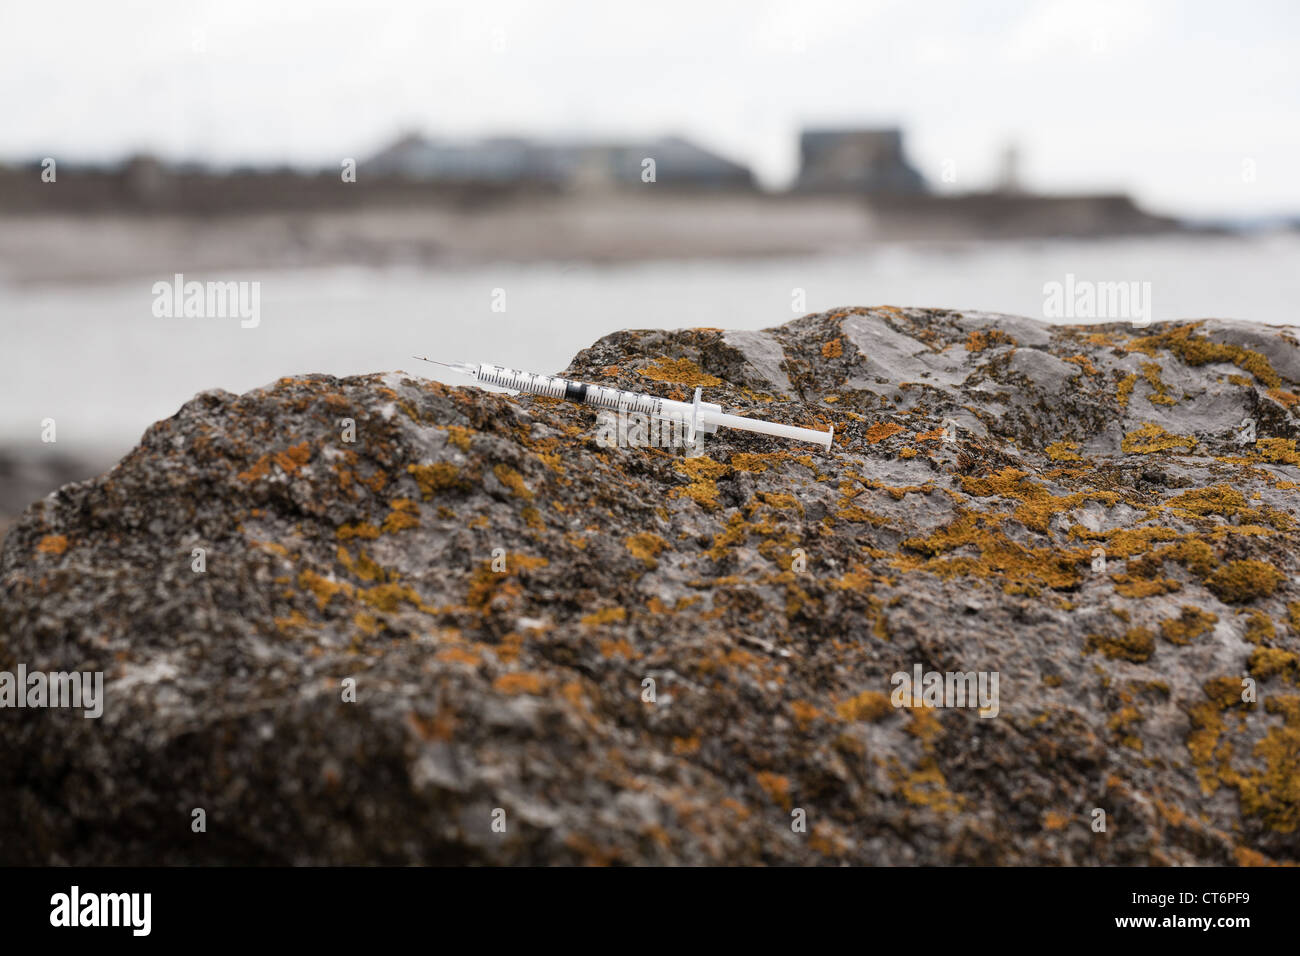 Discarded   Hypodermic  Syringe on a beach - Stock Image